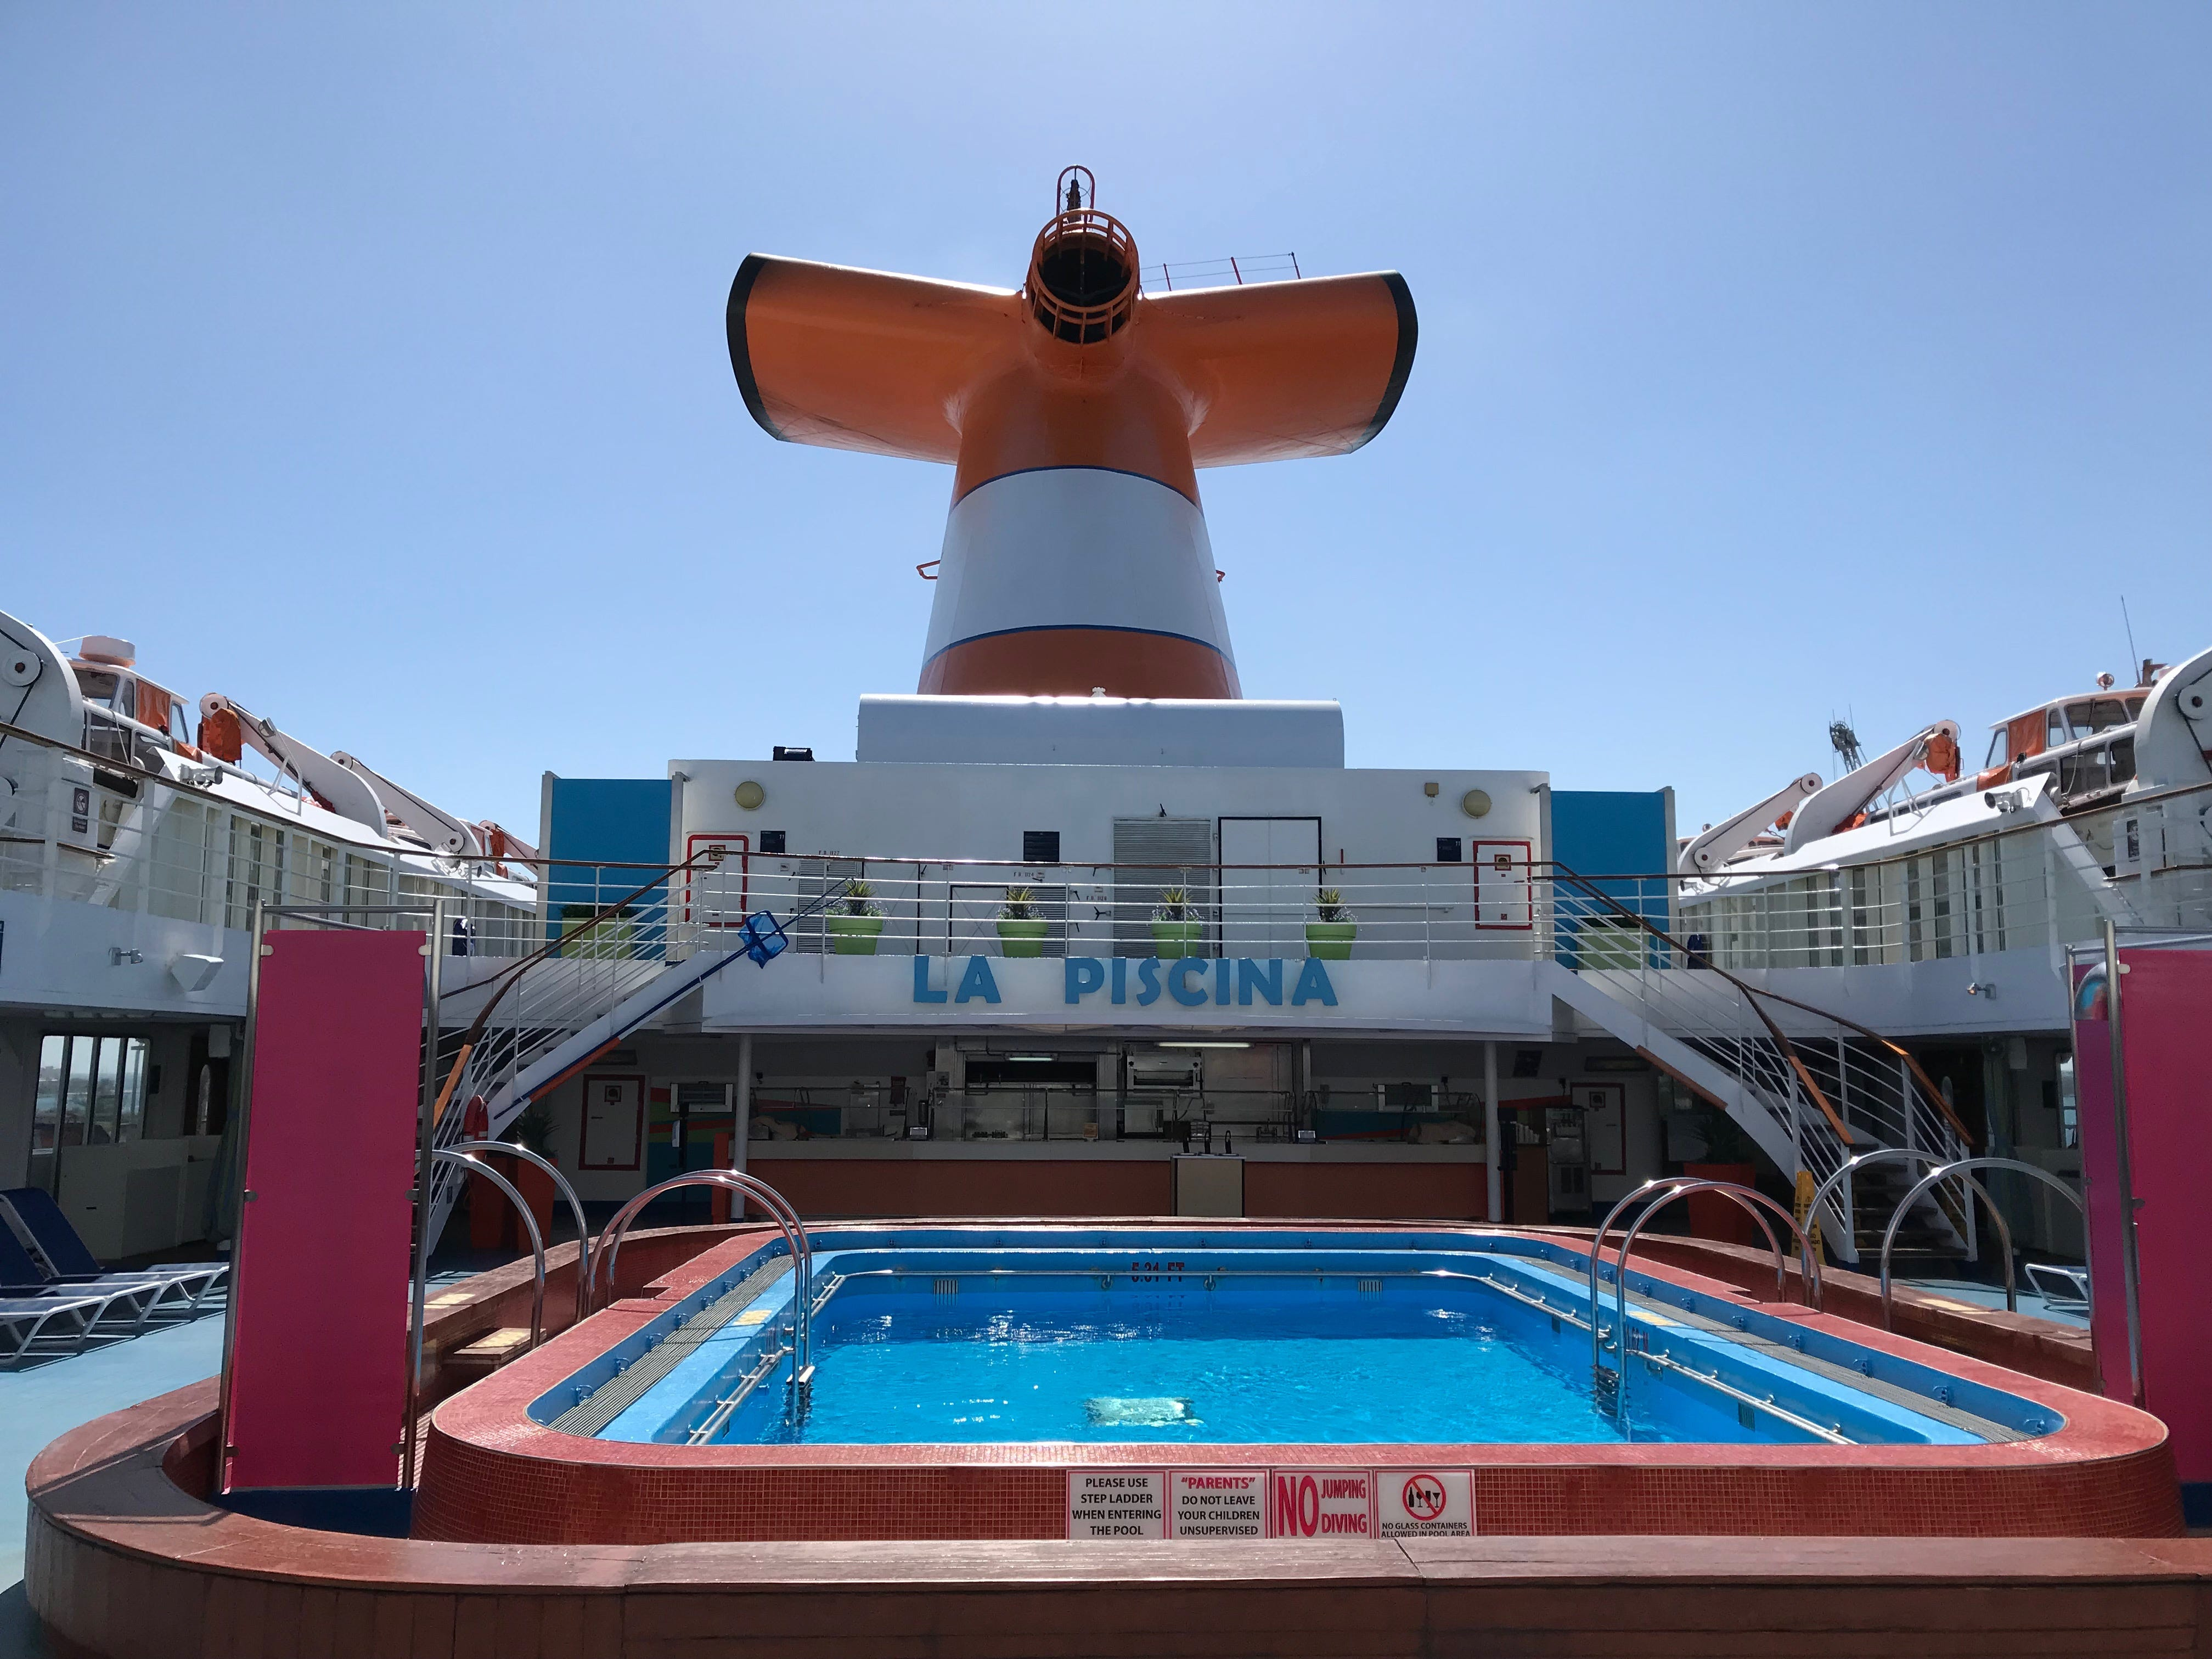 The midships portion of Luna Deck surrounds the La Piscina pool area, which has a large bar and grill.